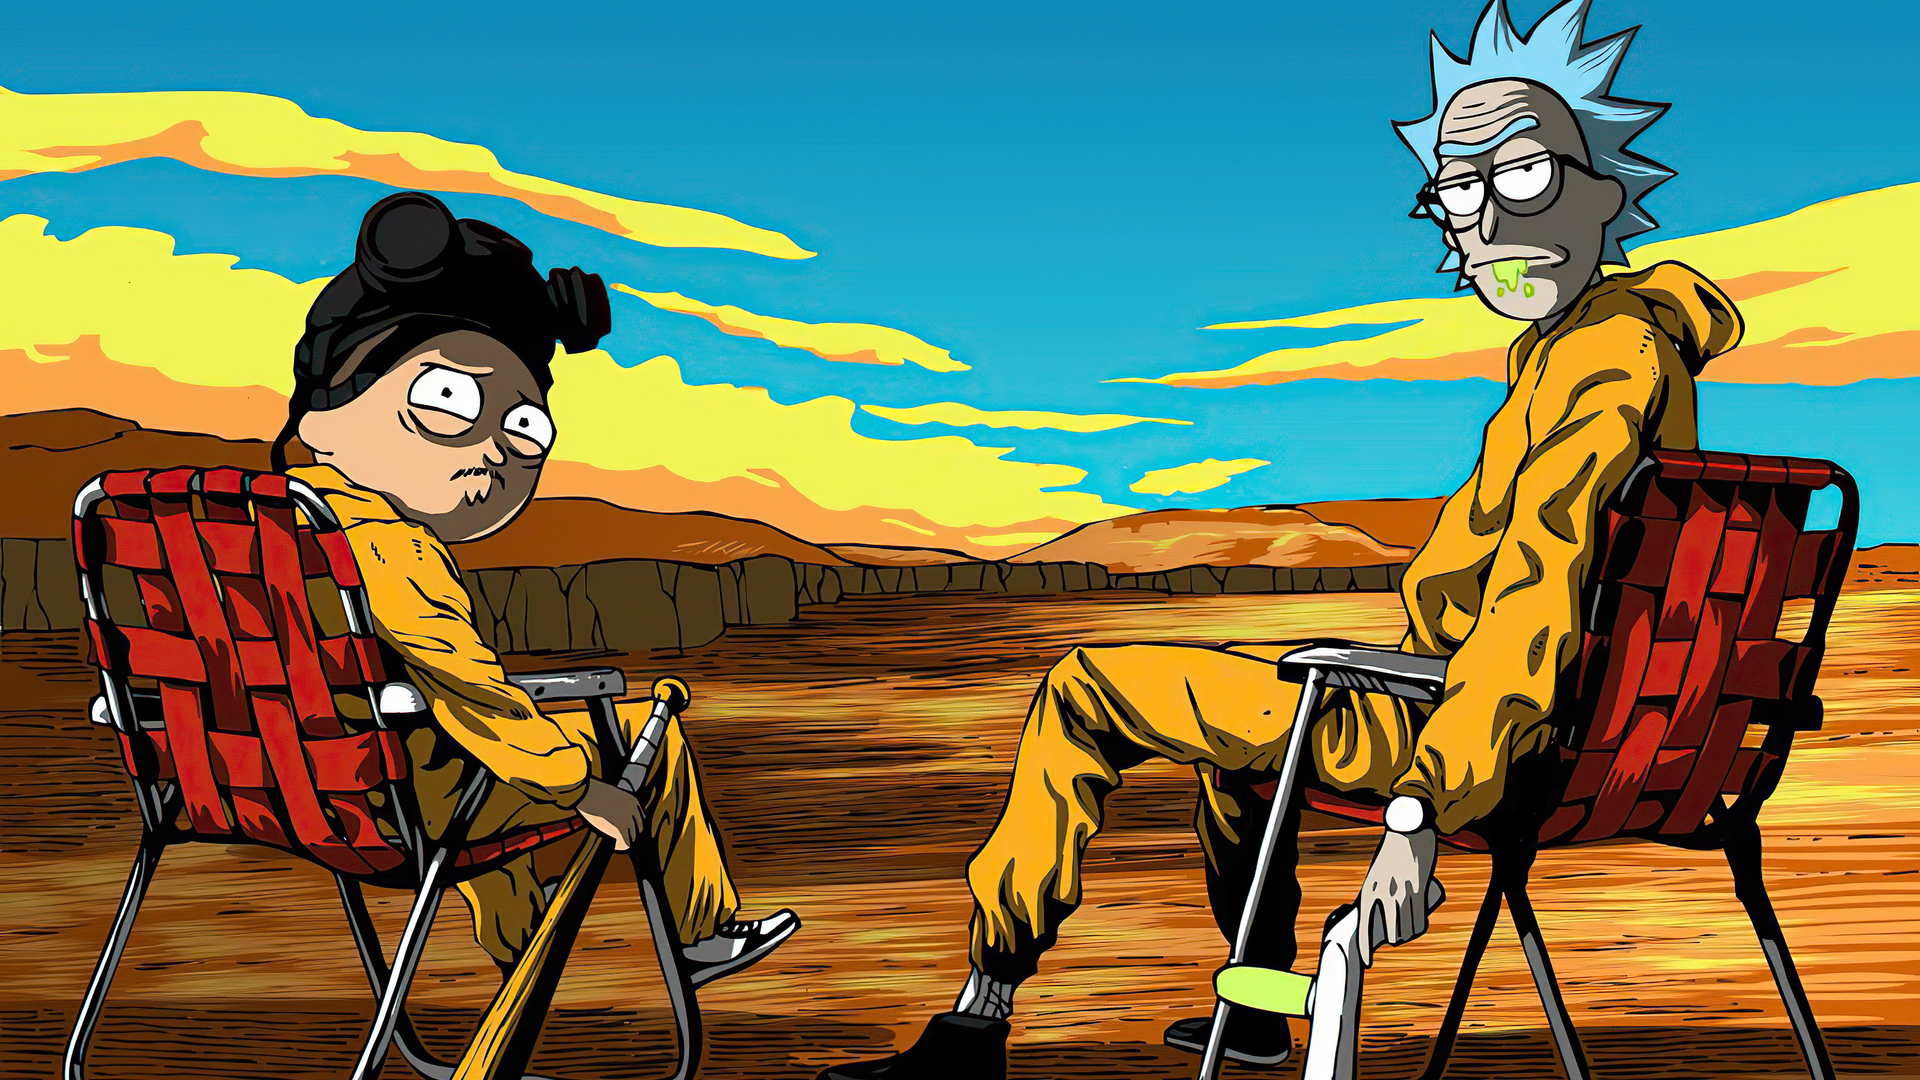 1920x1080 Rick And Morty Breaking Bad 4k Laptop Full Hd 1080p Hd 4k Wallpapers Images Backgrounds Photos And Pictures